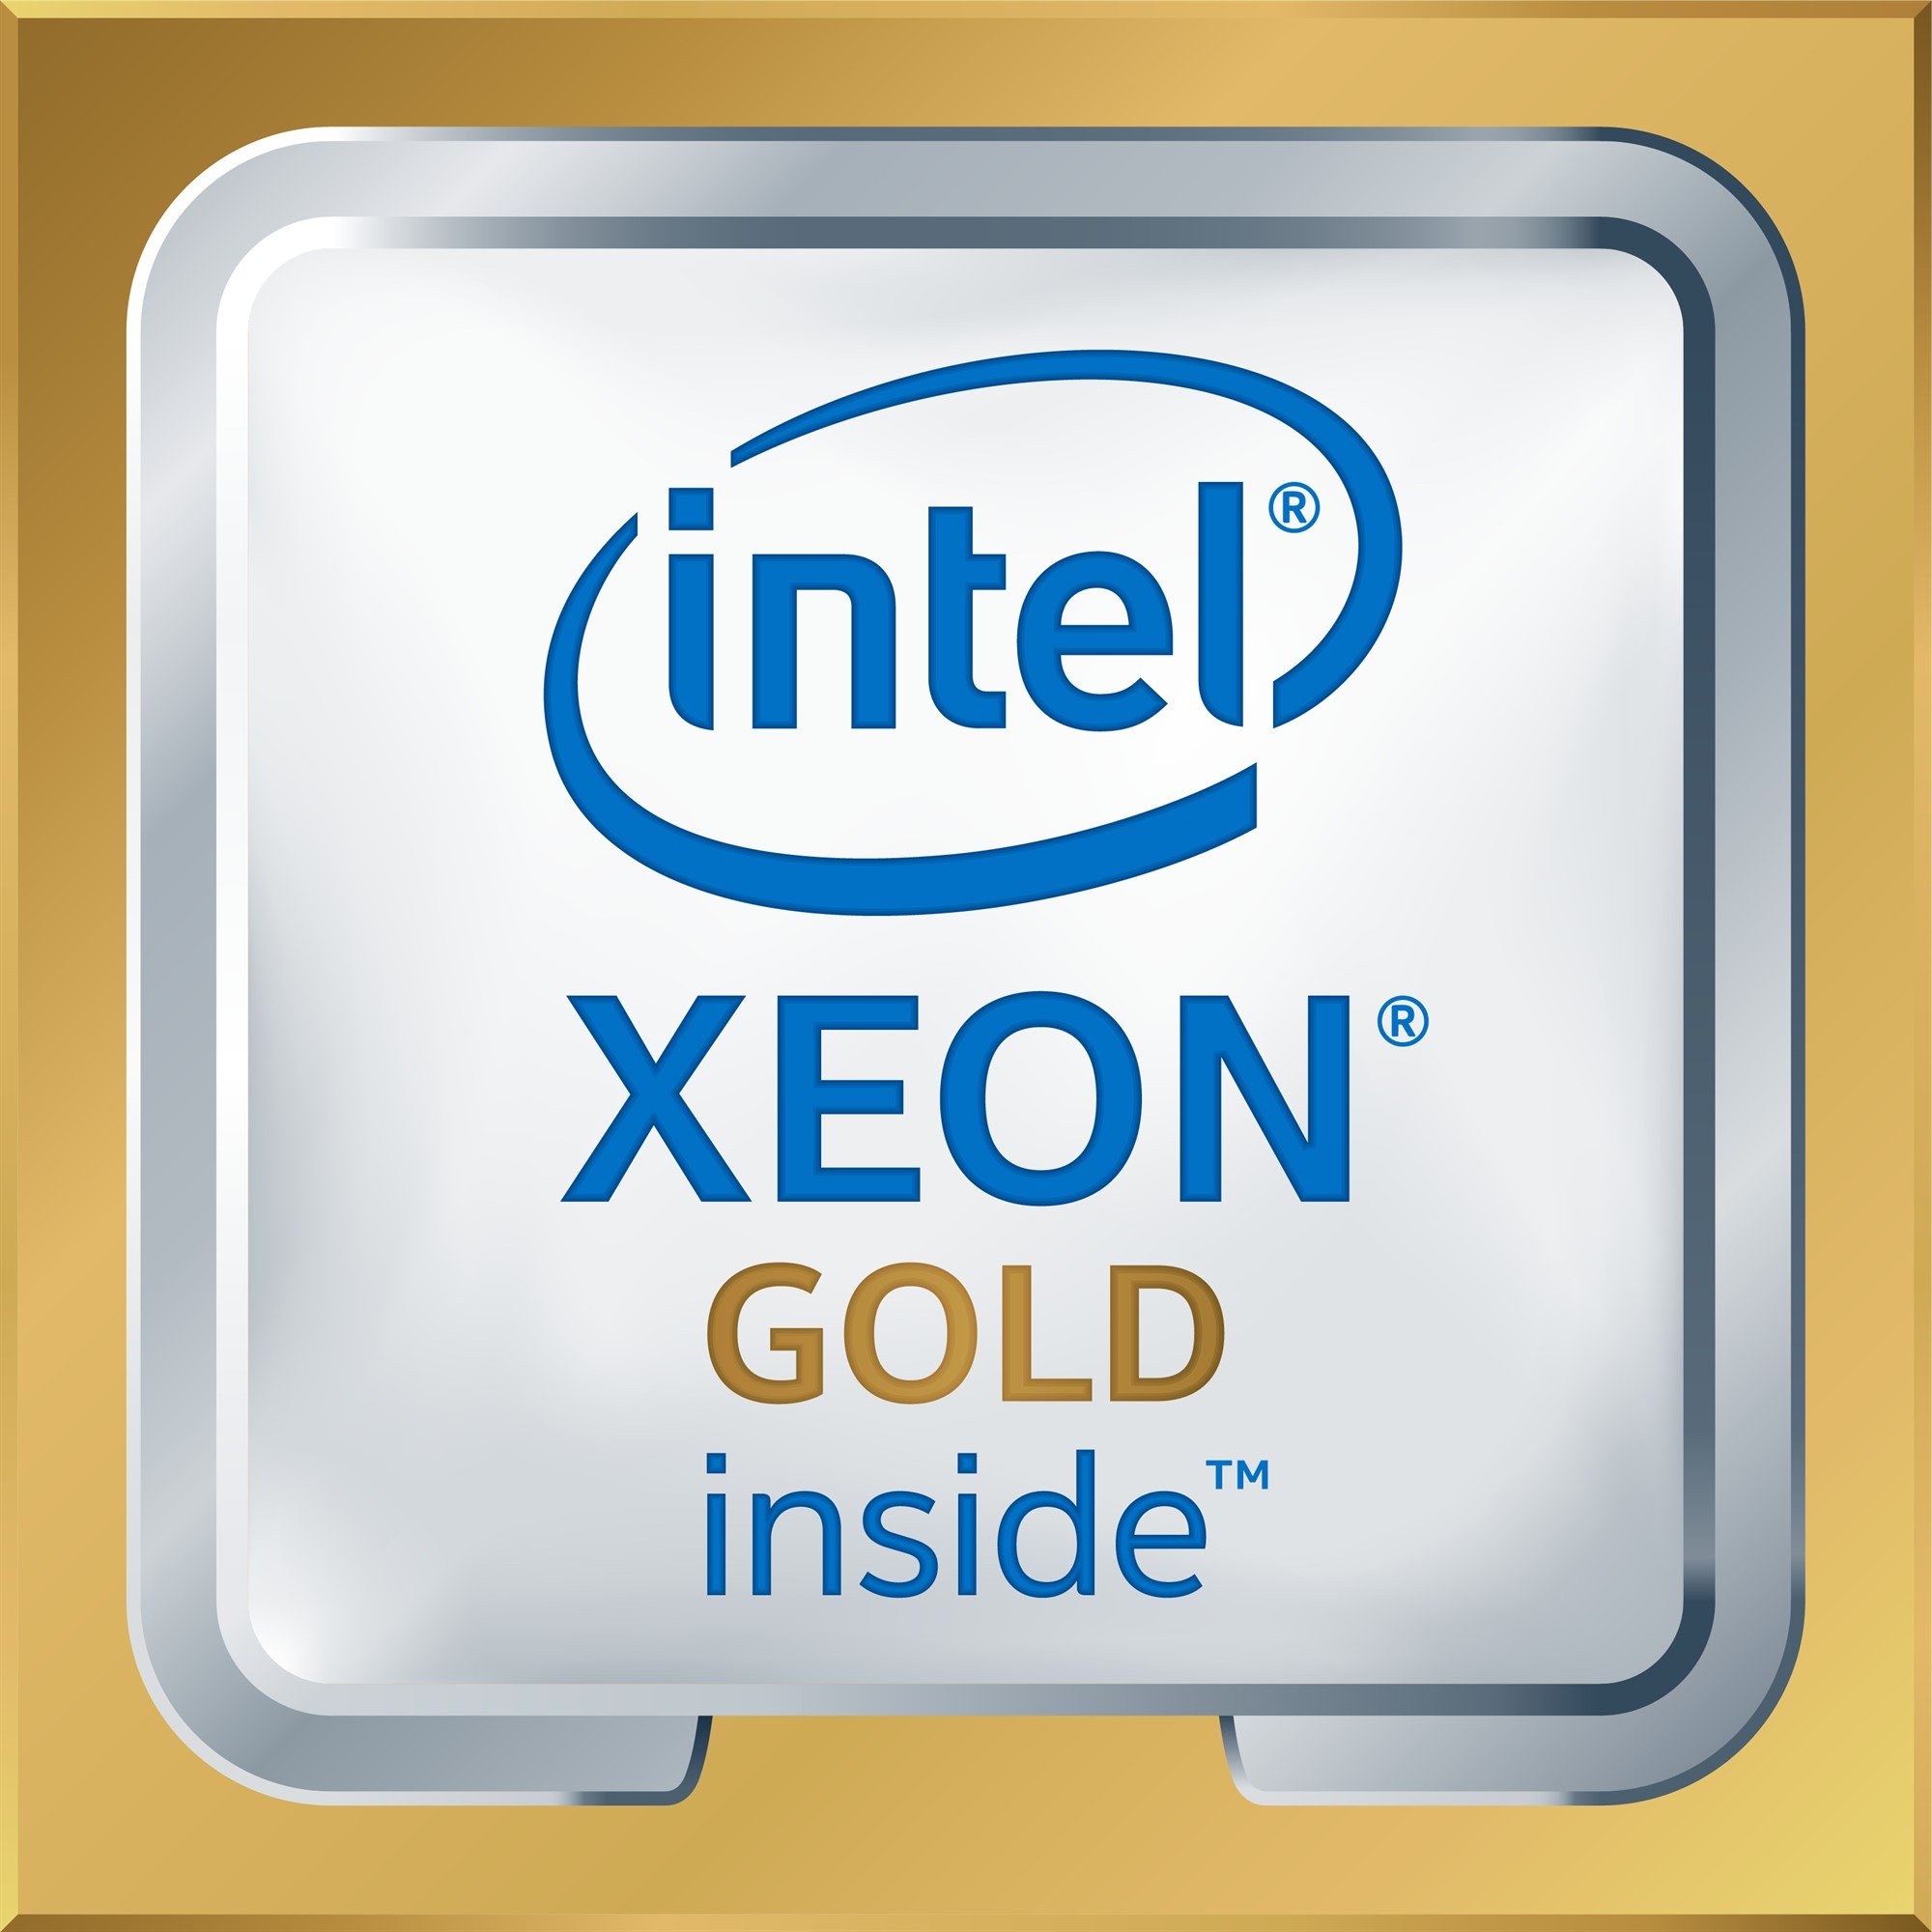 INTEL XEON GOLD 6136 PROCESSOR (24.75M CACHE, 3.00 GHZ) 3.00GHZ 24.8MB L3